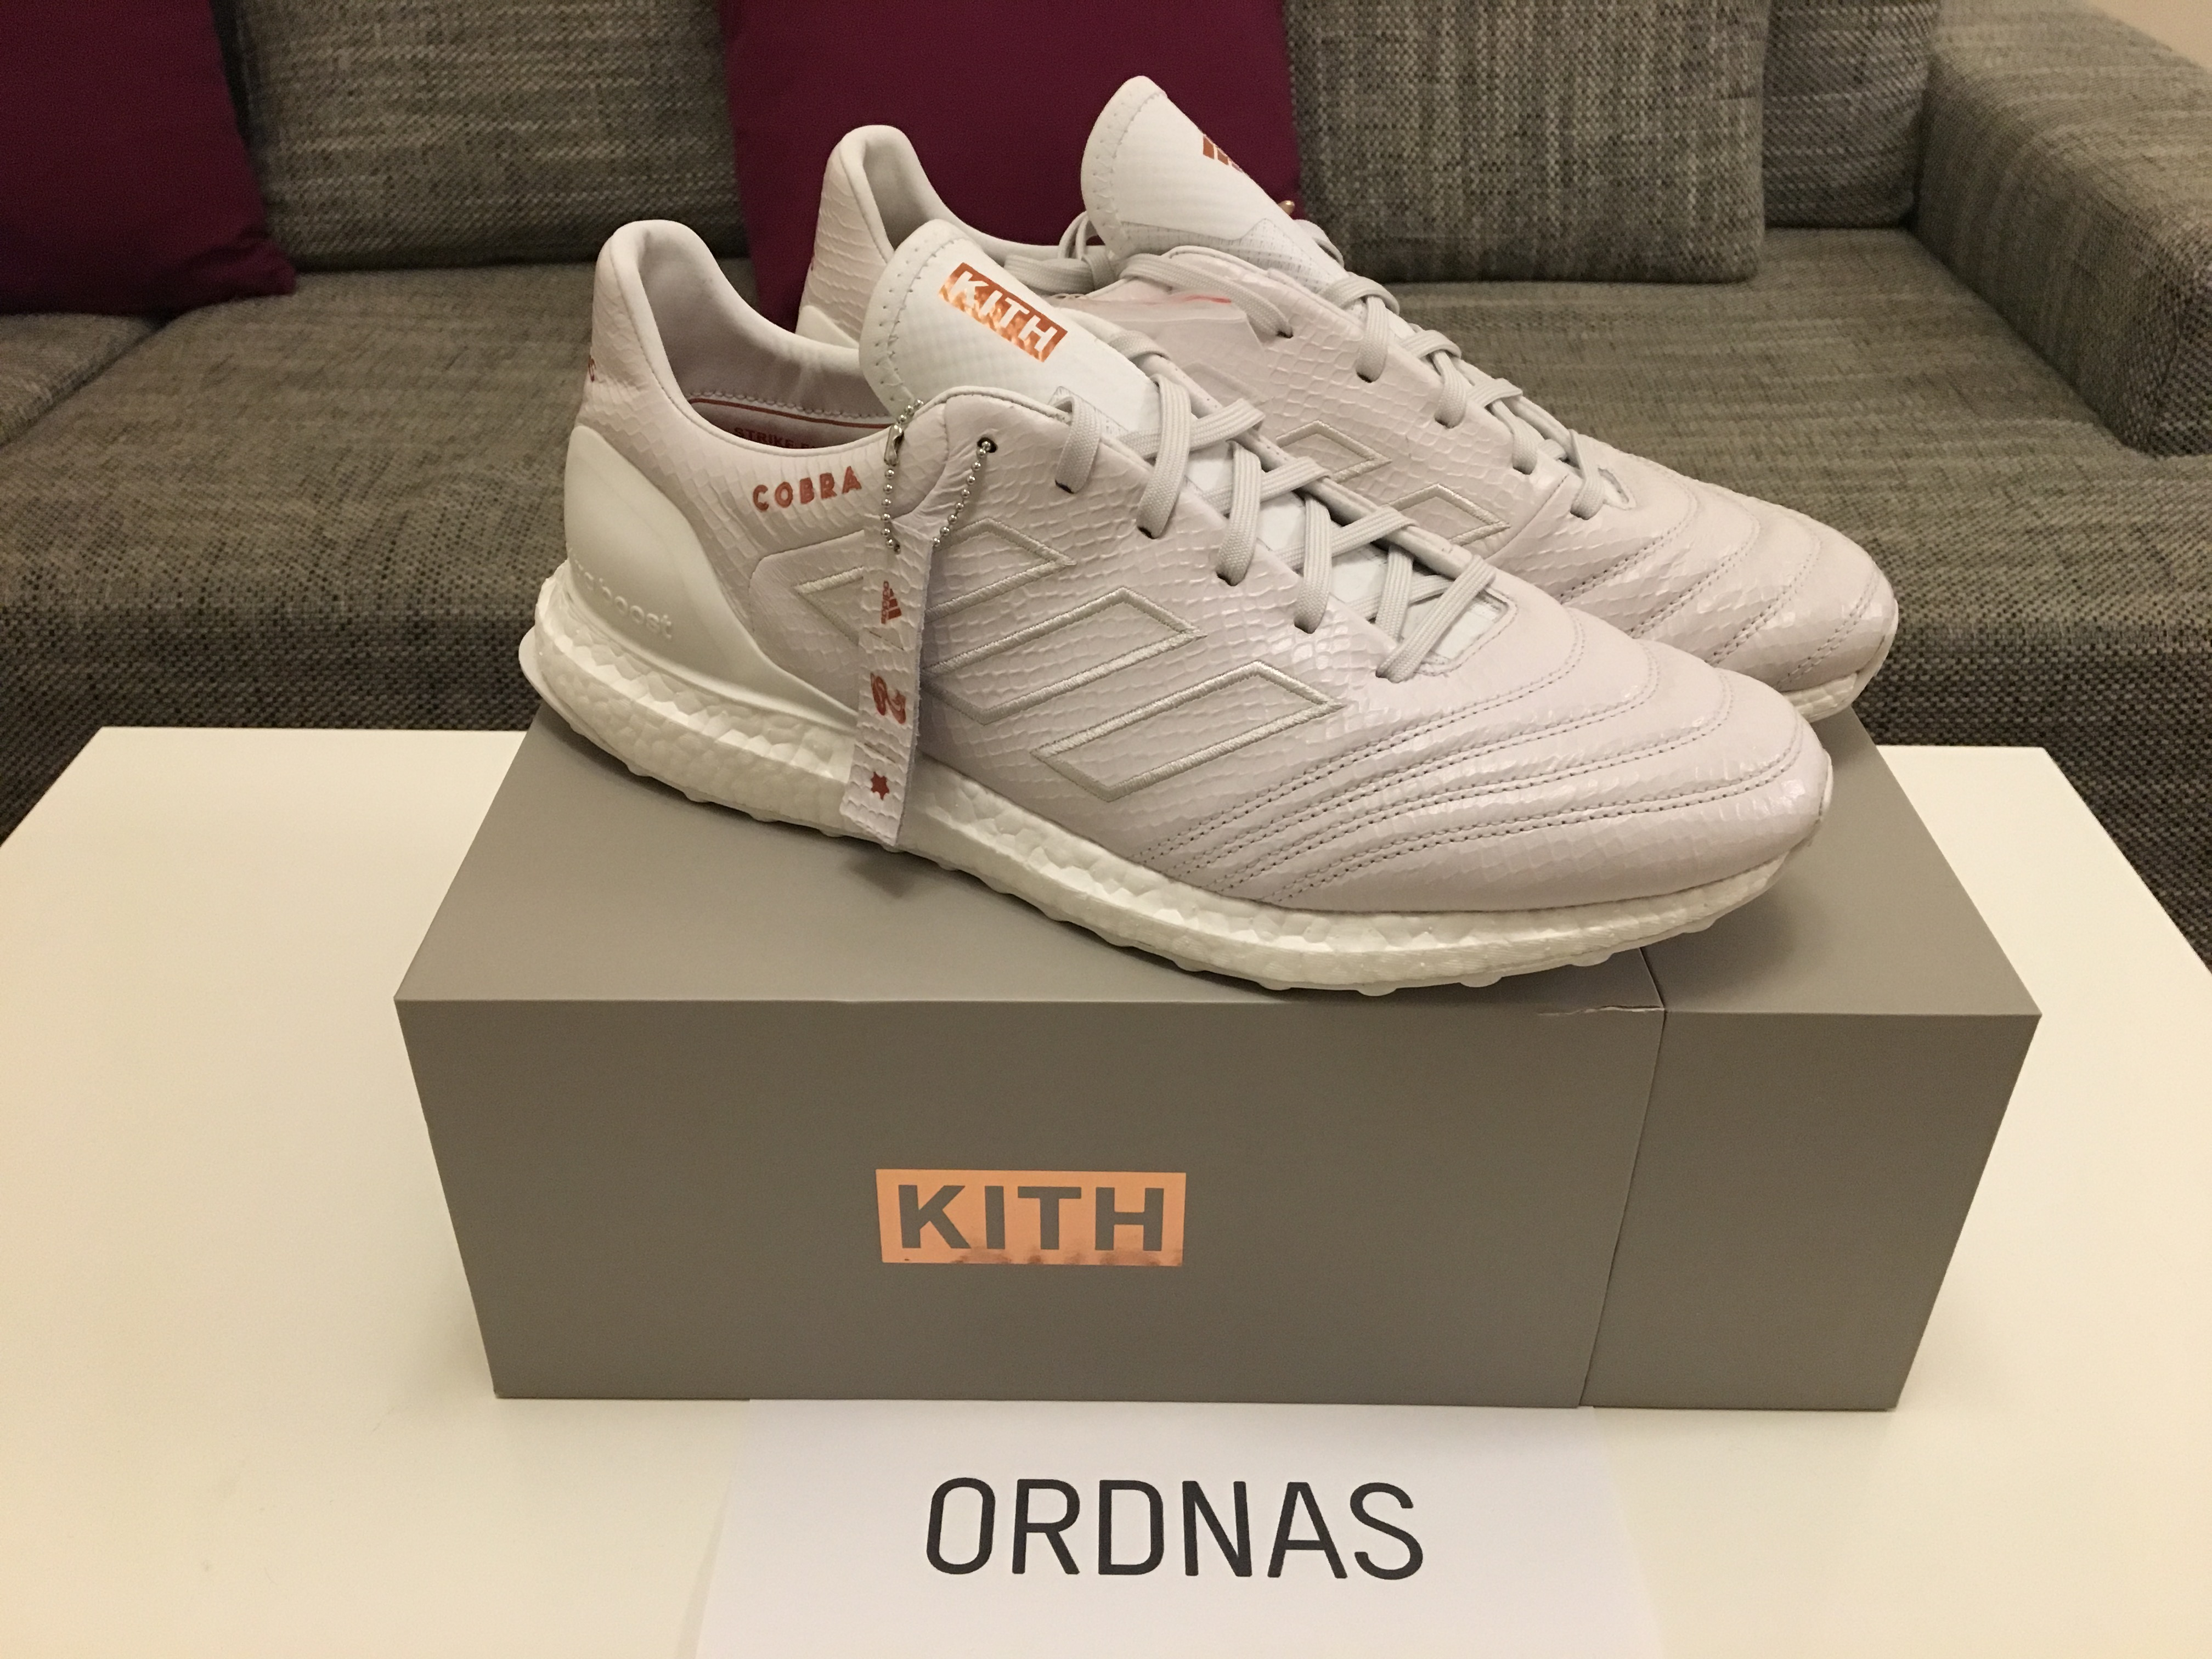 huge discount 8b320 e37b5 Adidas Kith x Adidas Copa 17.1 Cobra Ultra Boost Size 11.5 - Low-Top  Sneakers for Sale - Grailed